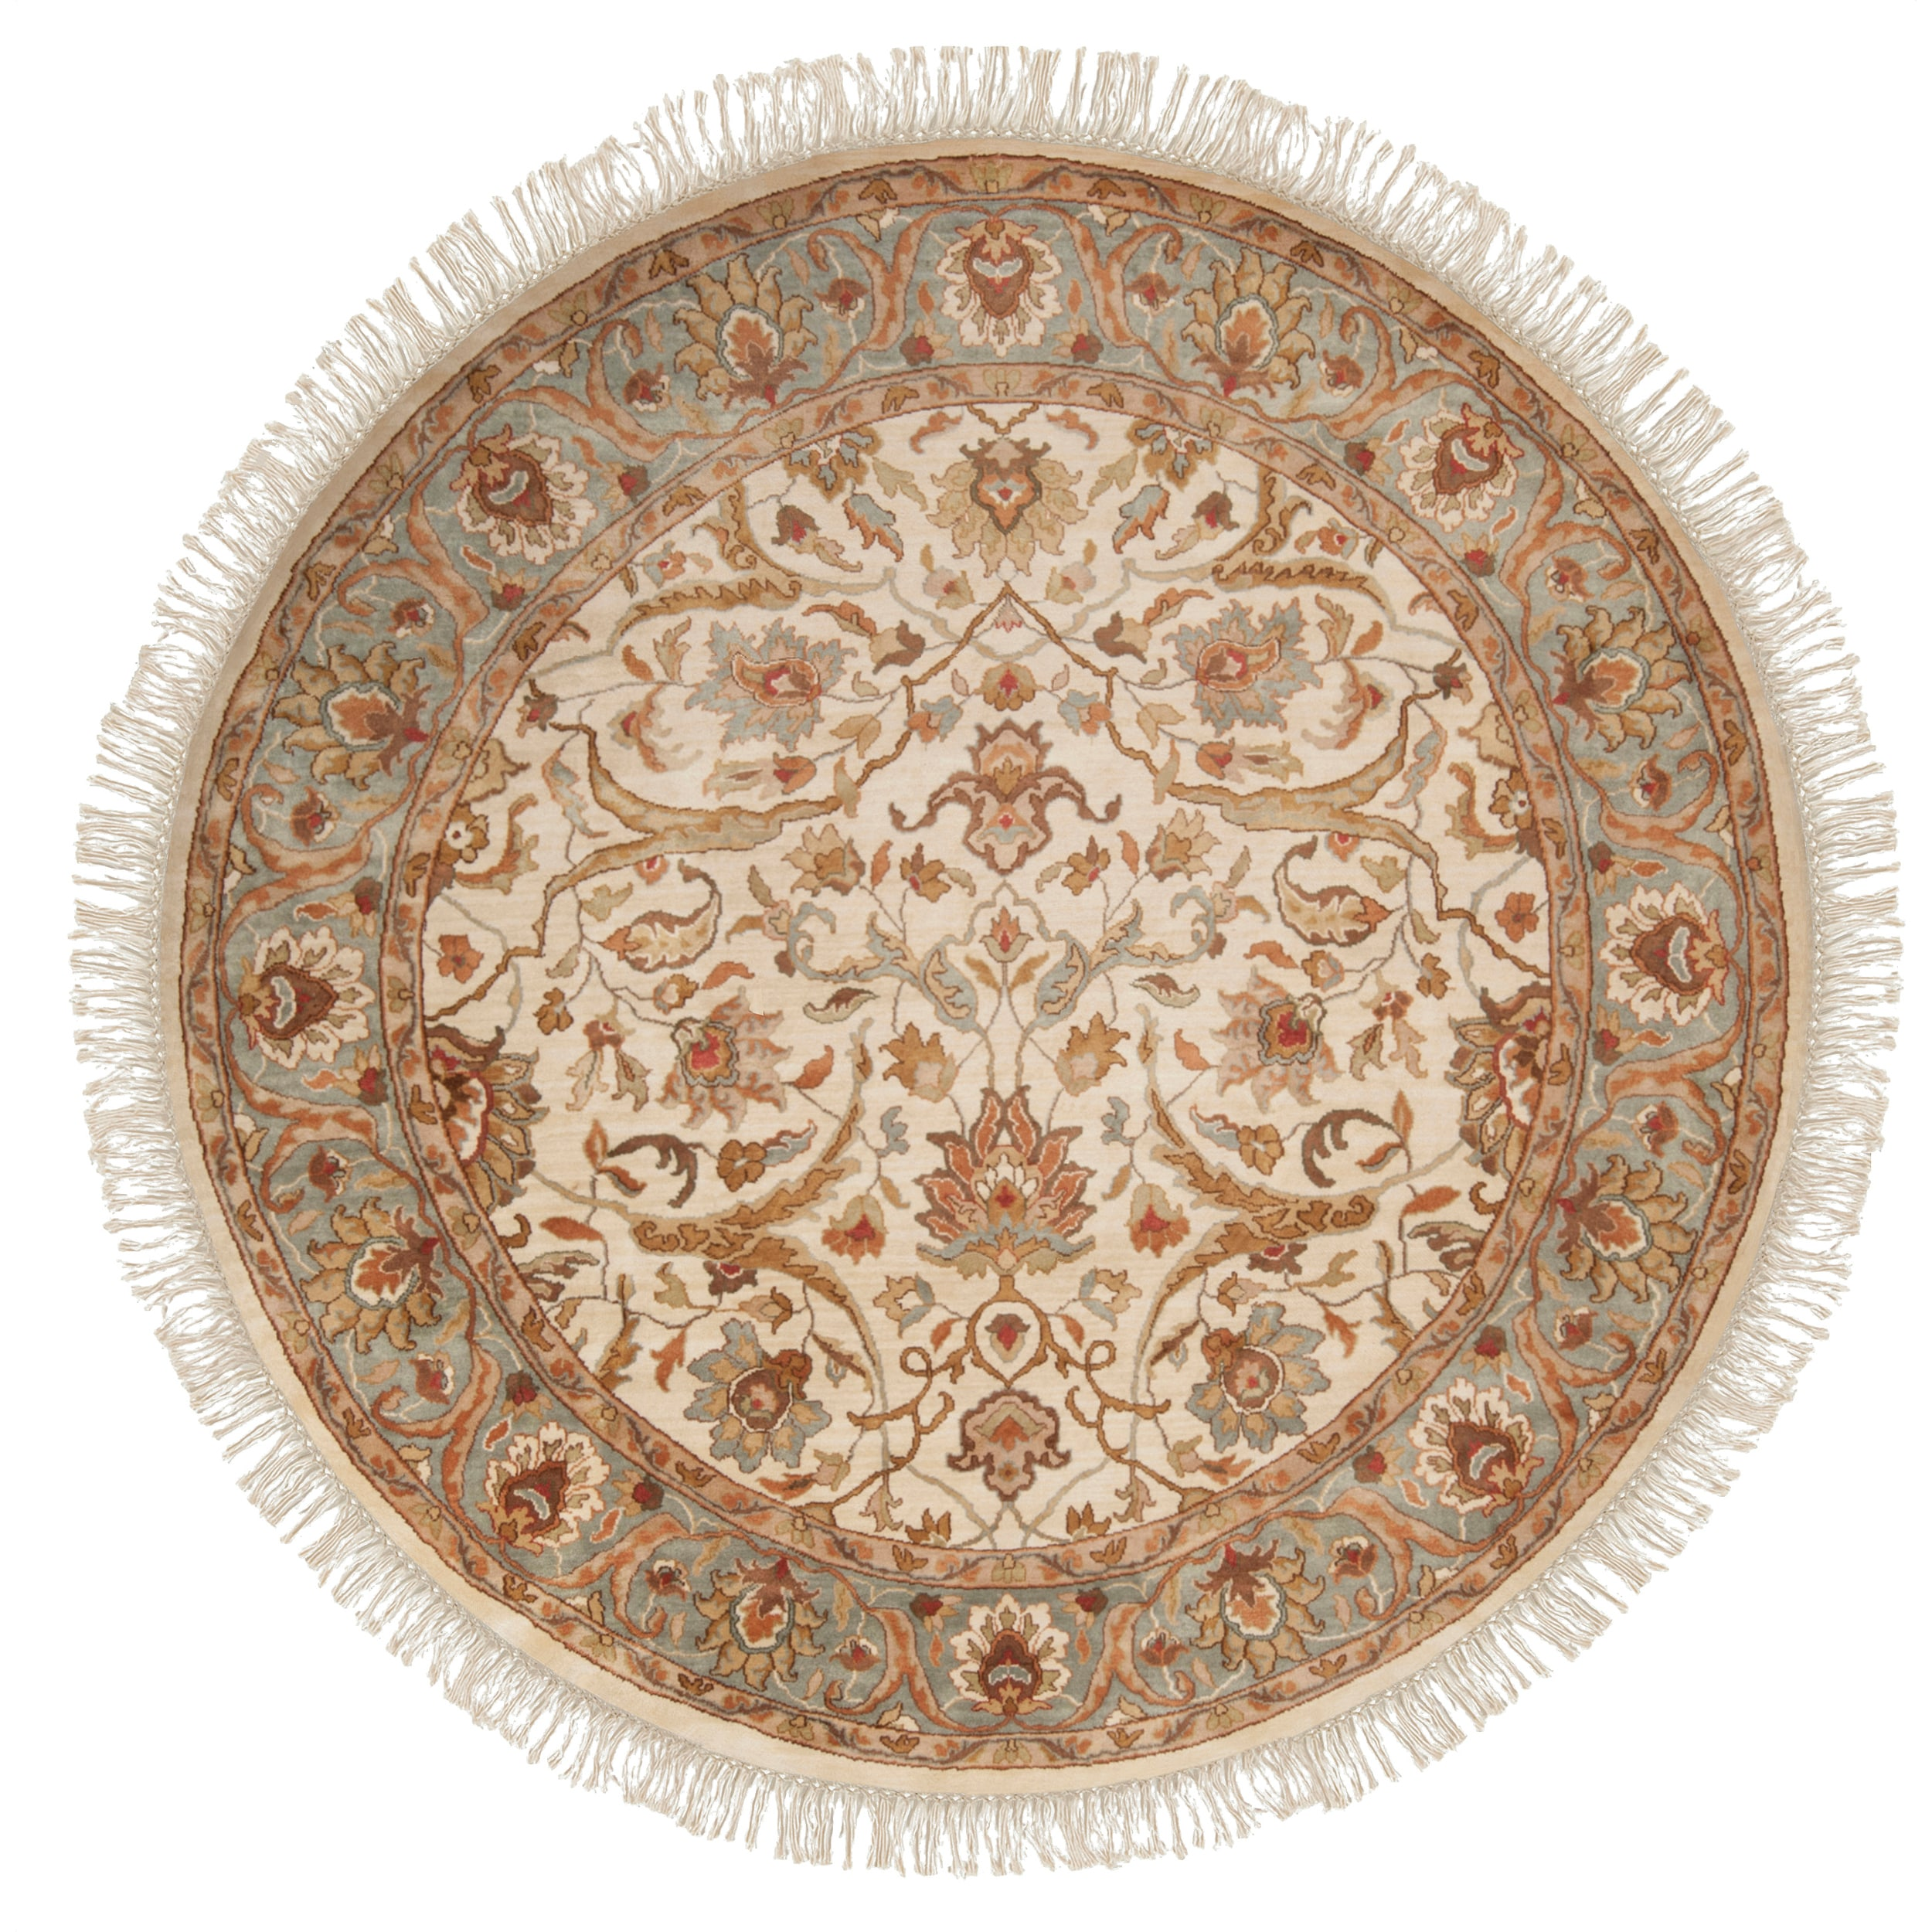 Hand Tufted Agra Red Gold Wool Rug 8 Round: Deals On 1001 Blocks